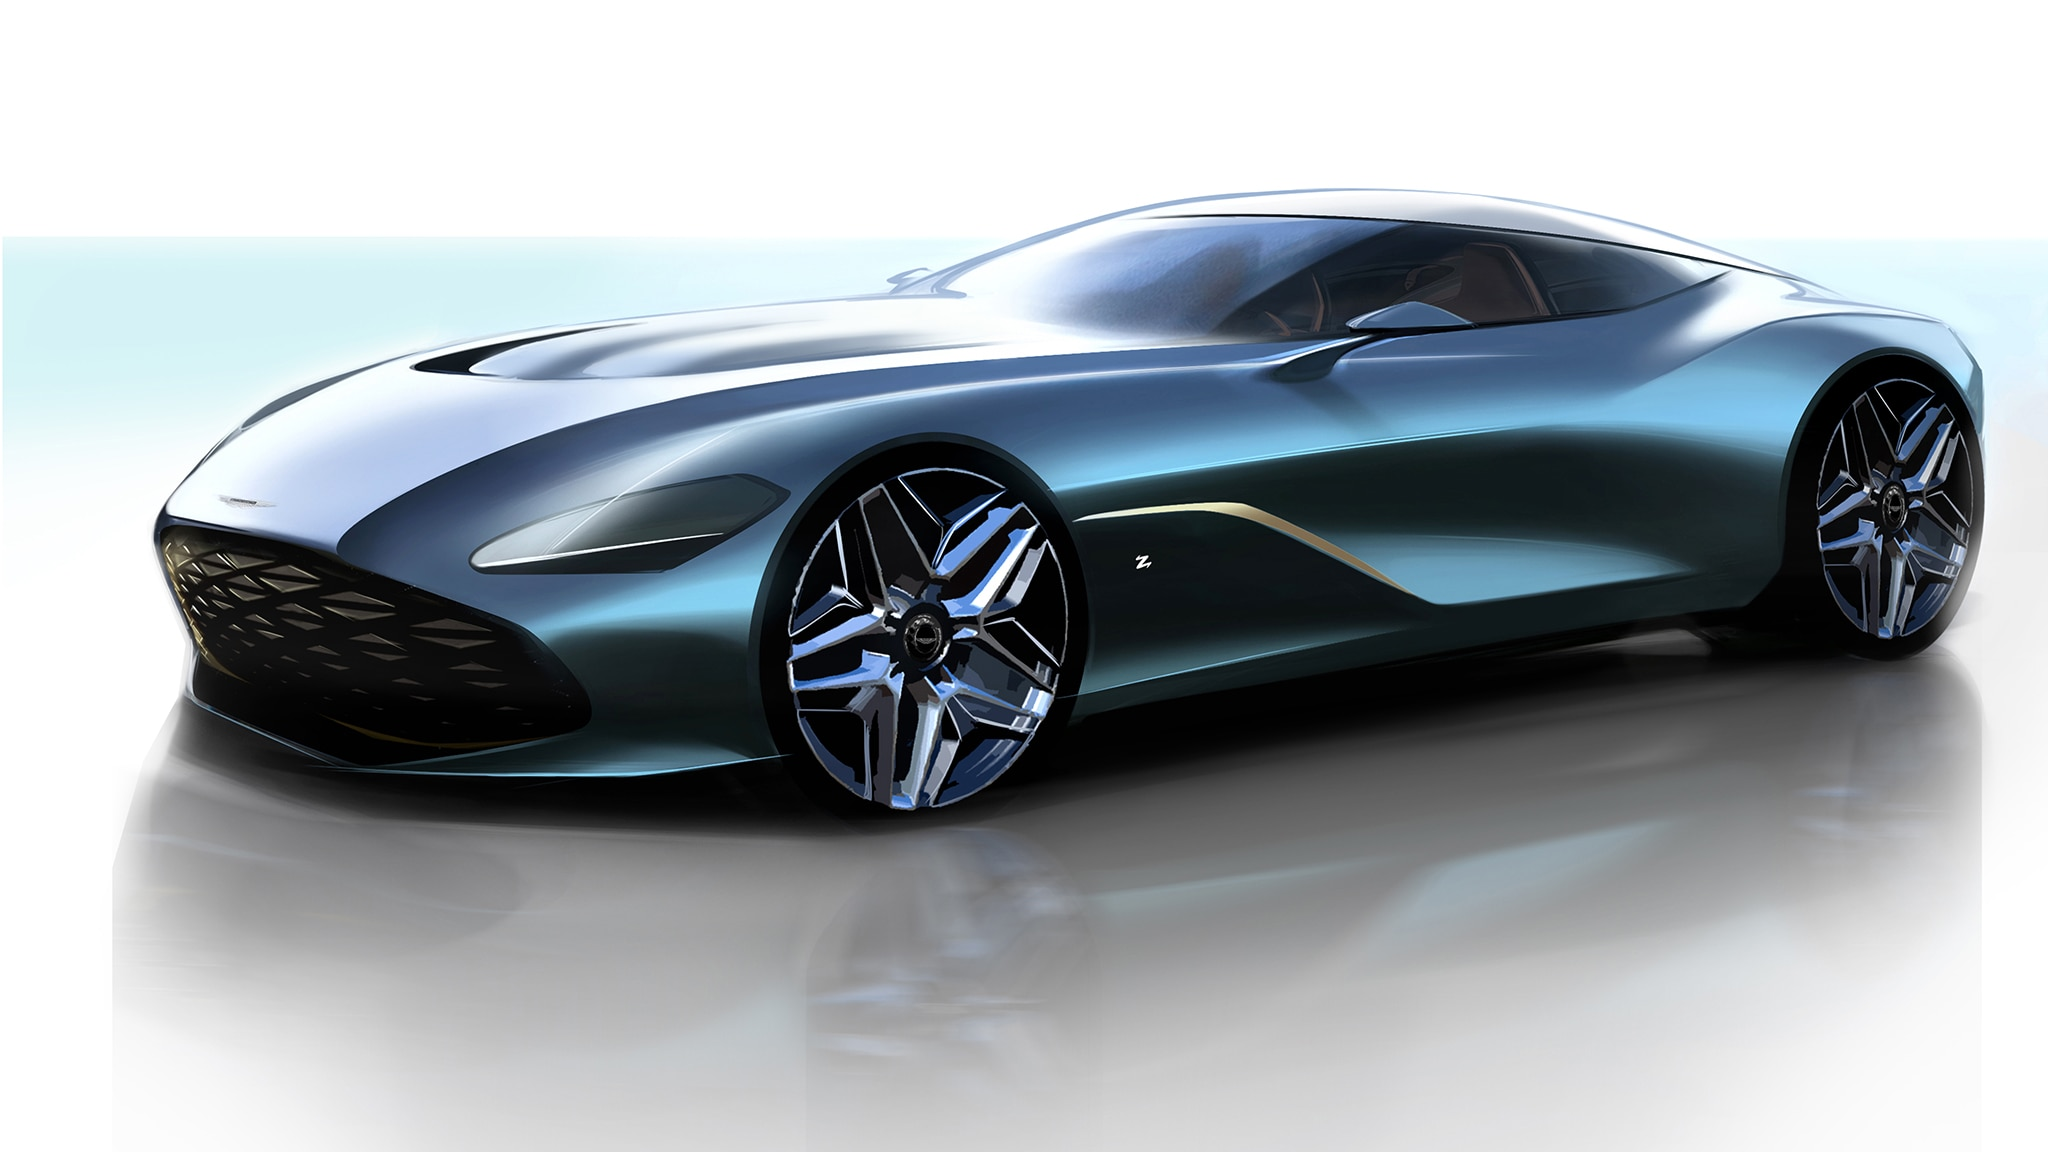 Aston Martin publishes images of $8 million pair of cars